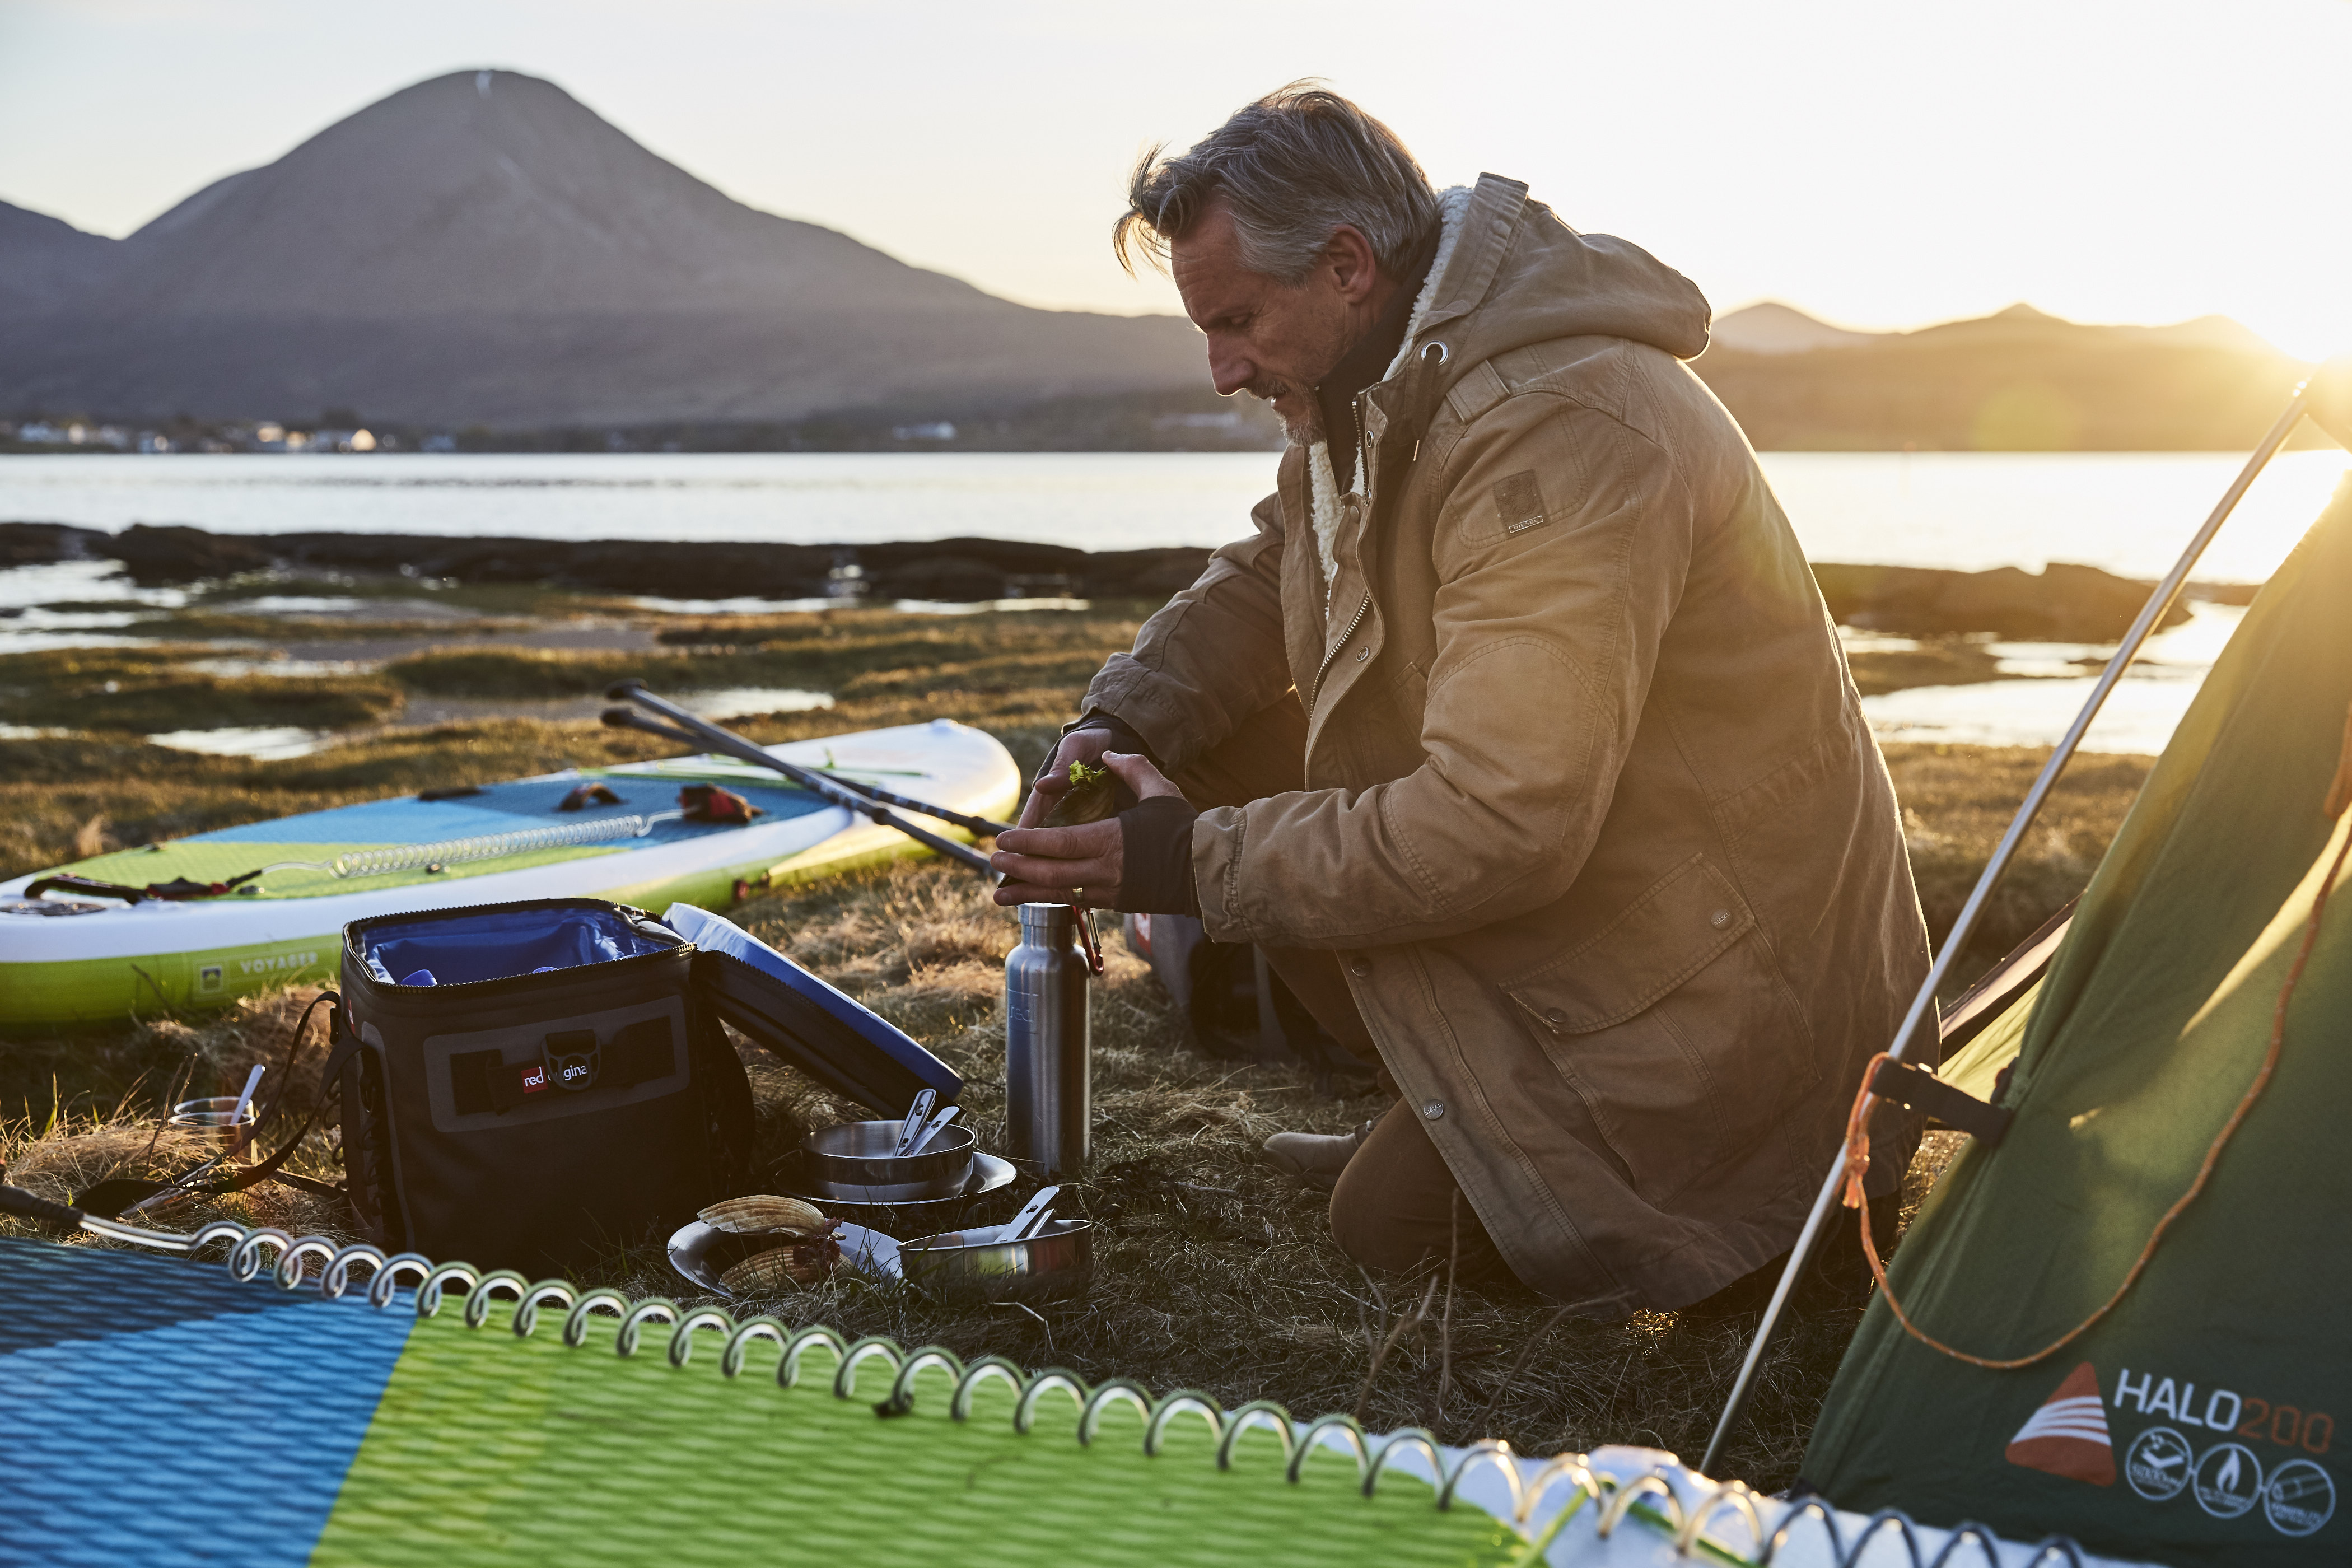 A man surrounded by camping equipment and inflatable paddle boards warms up